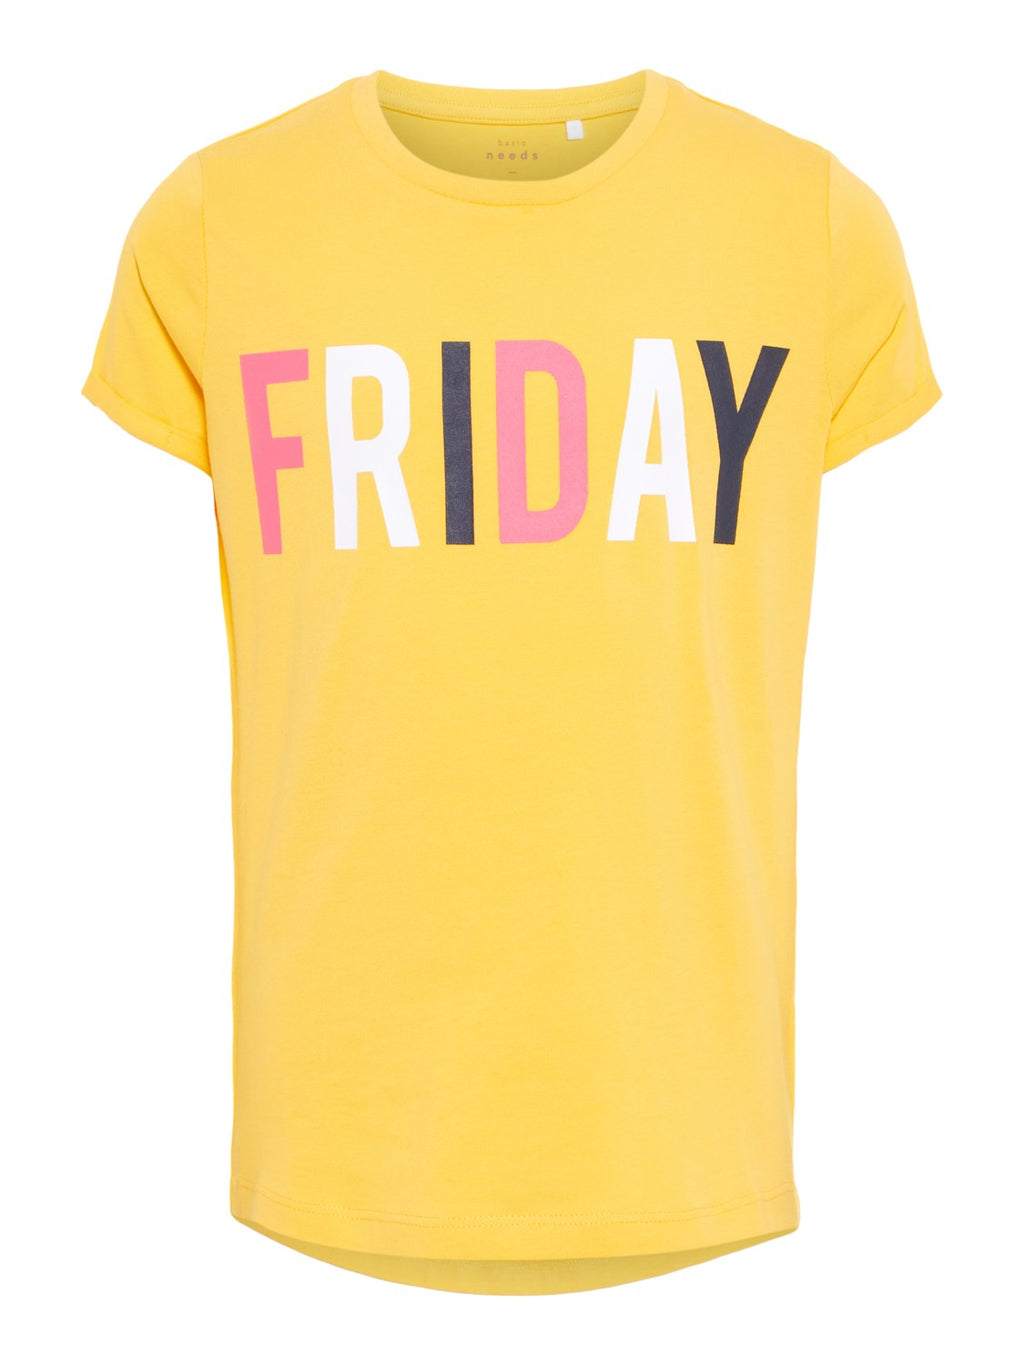 Name it : T-shirt Friday T-shirt Outlet Kamélie.be